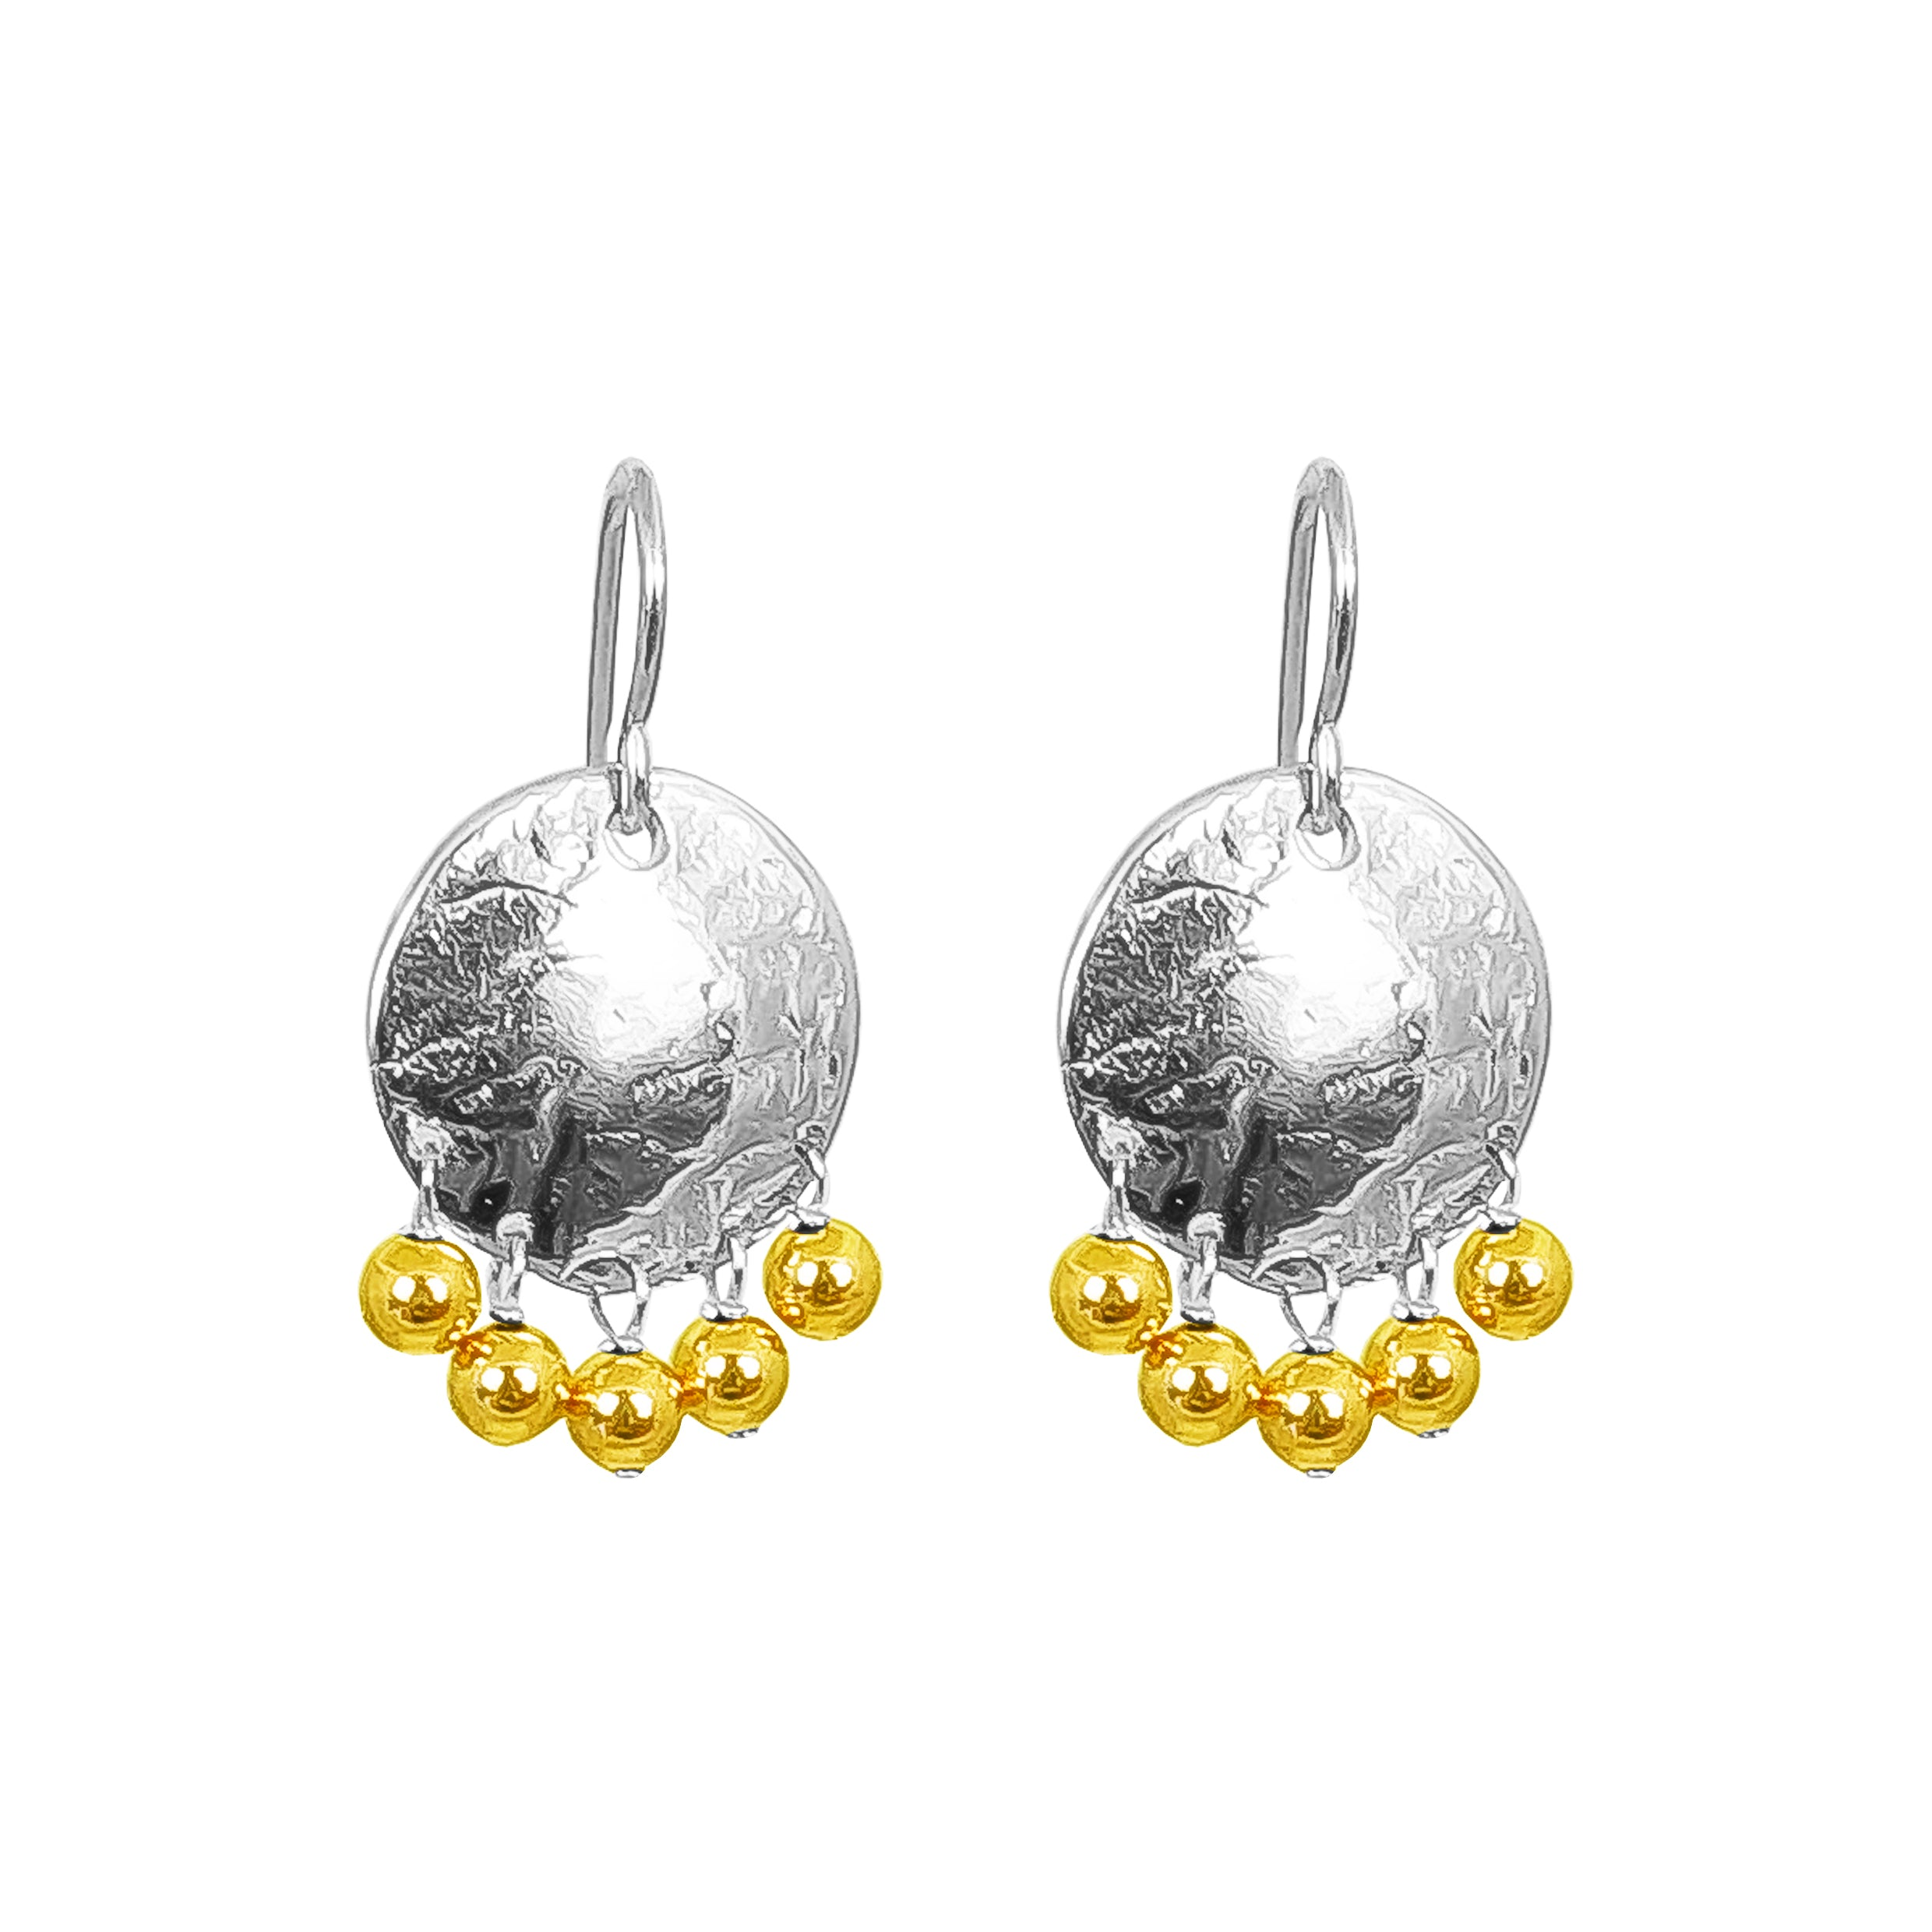 Harlow Small Disc Earrings | Silver With Polished Gold Drops